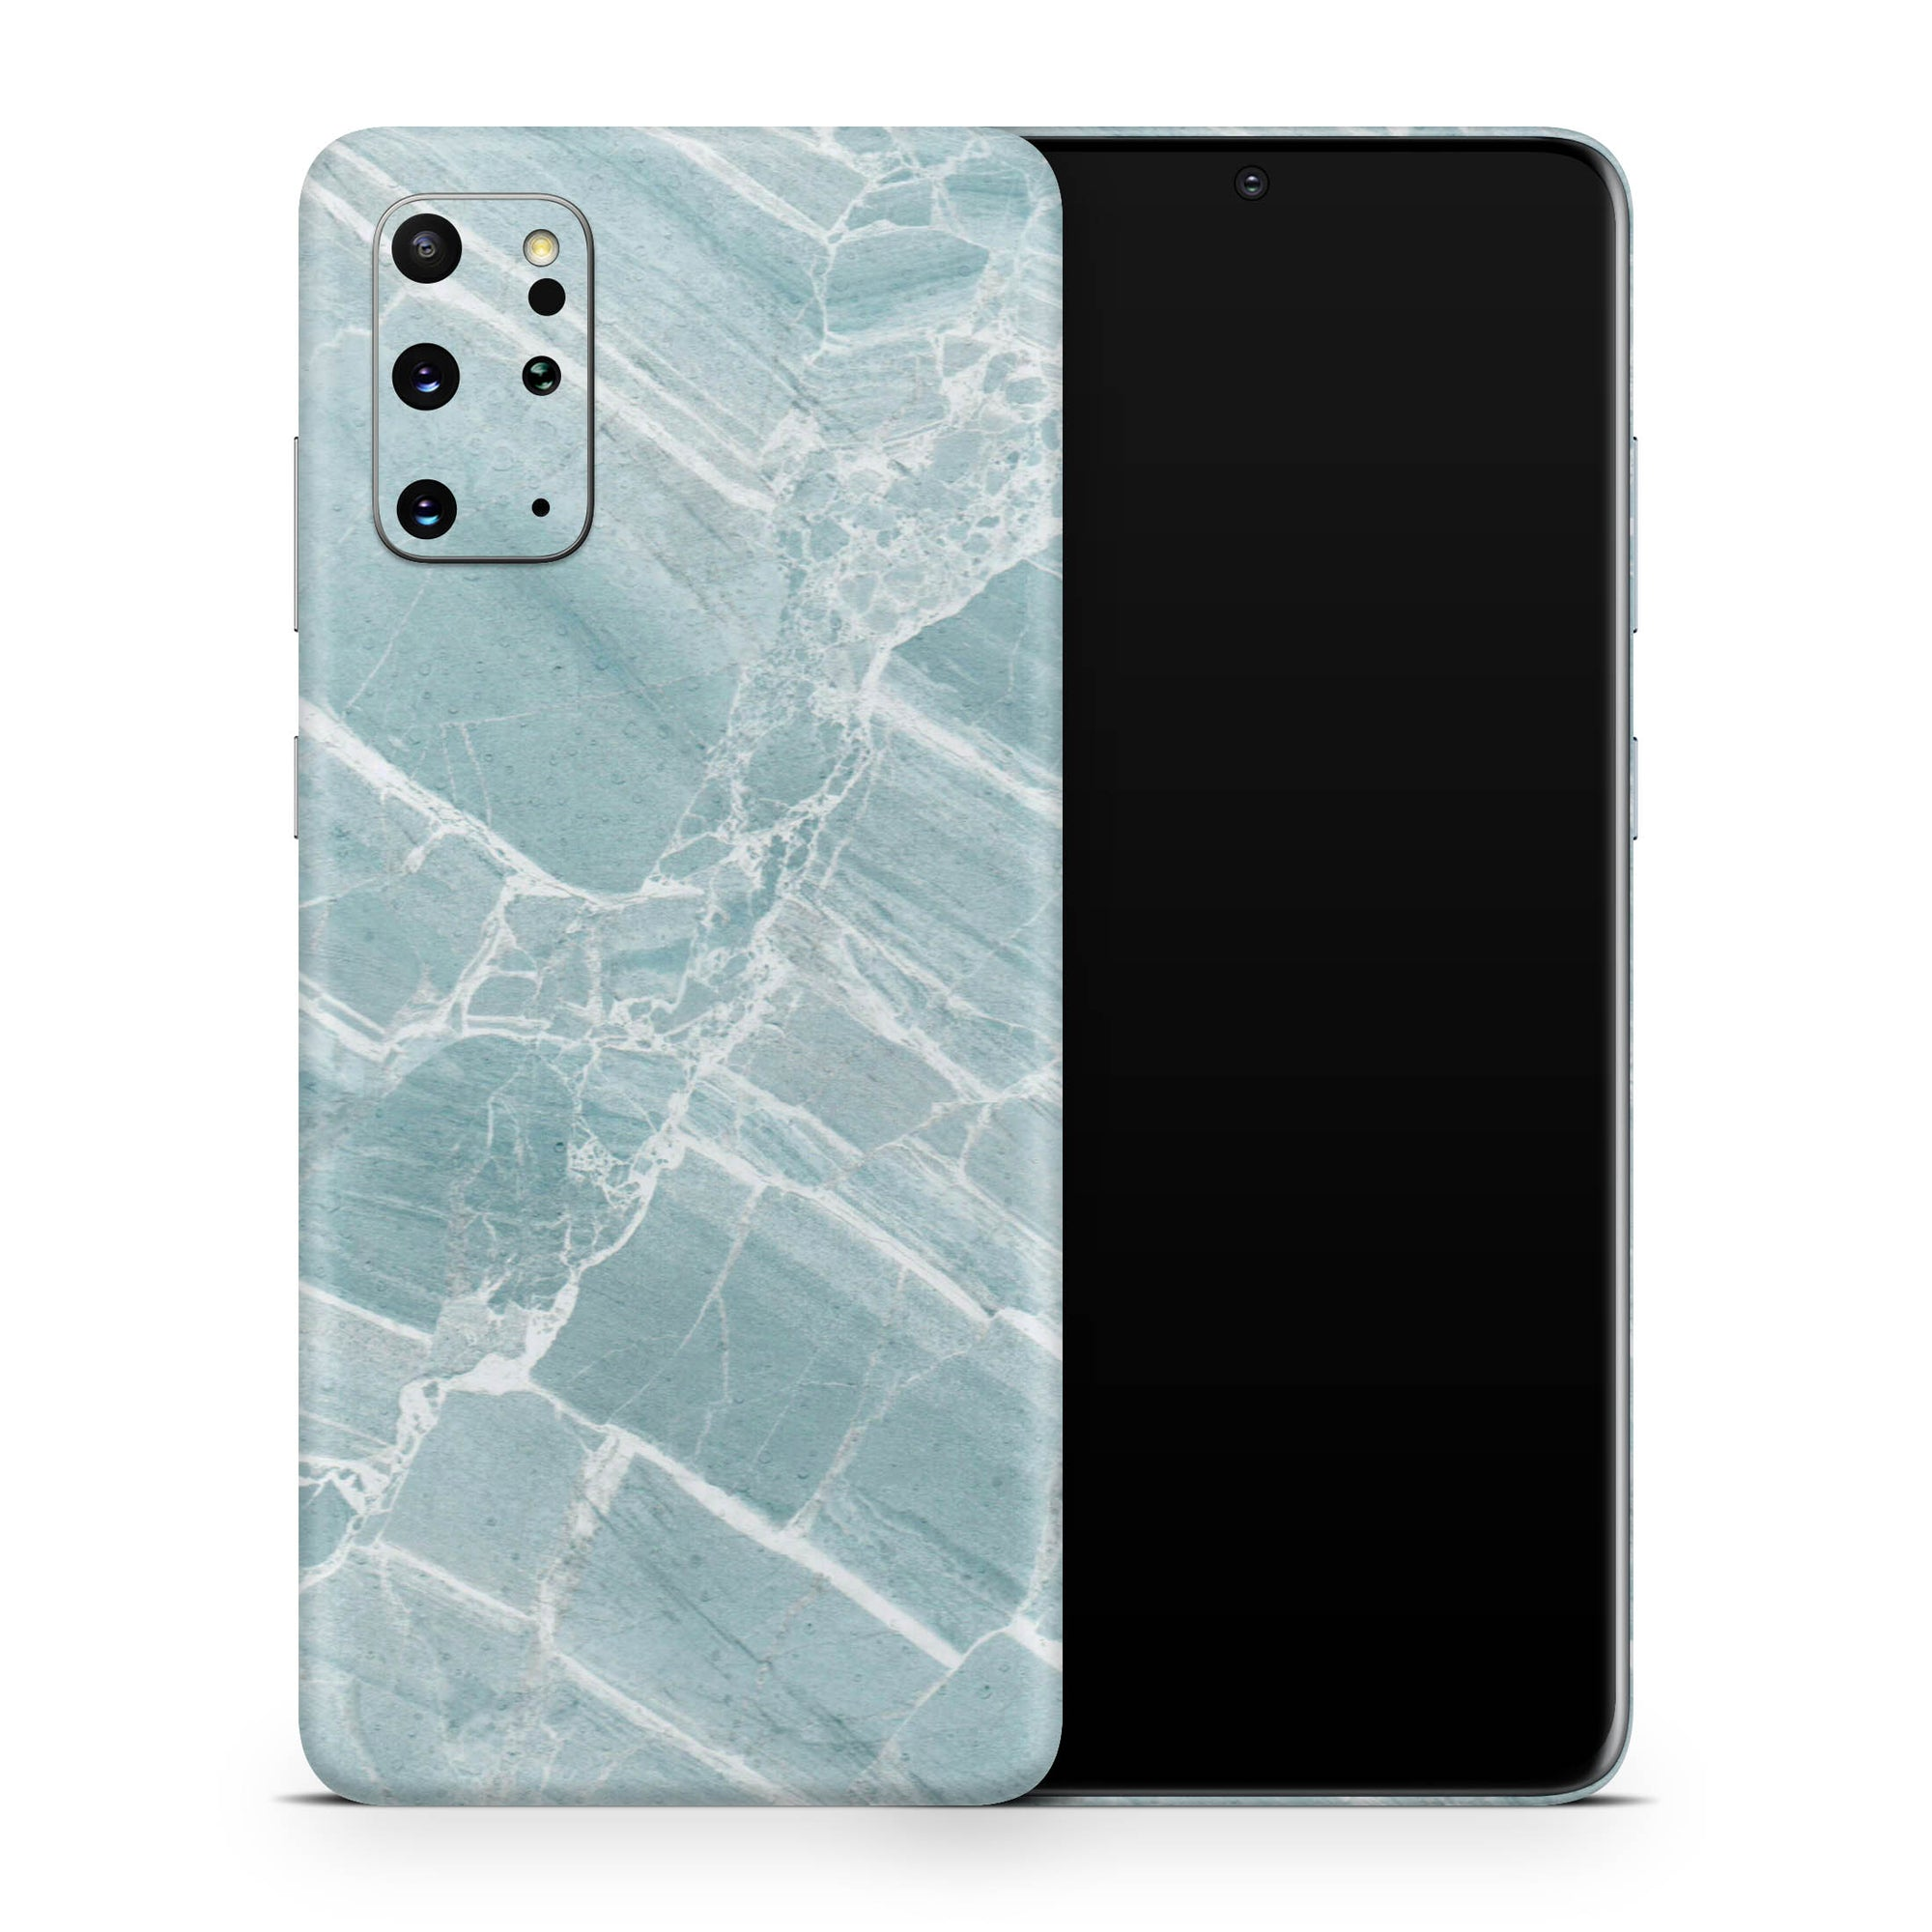 Mint Marble Galaxy S20 Ultra Skin + Case-Uniqfind